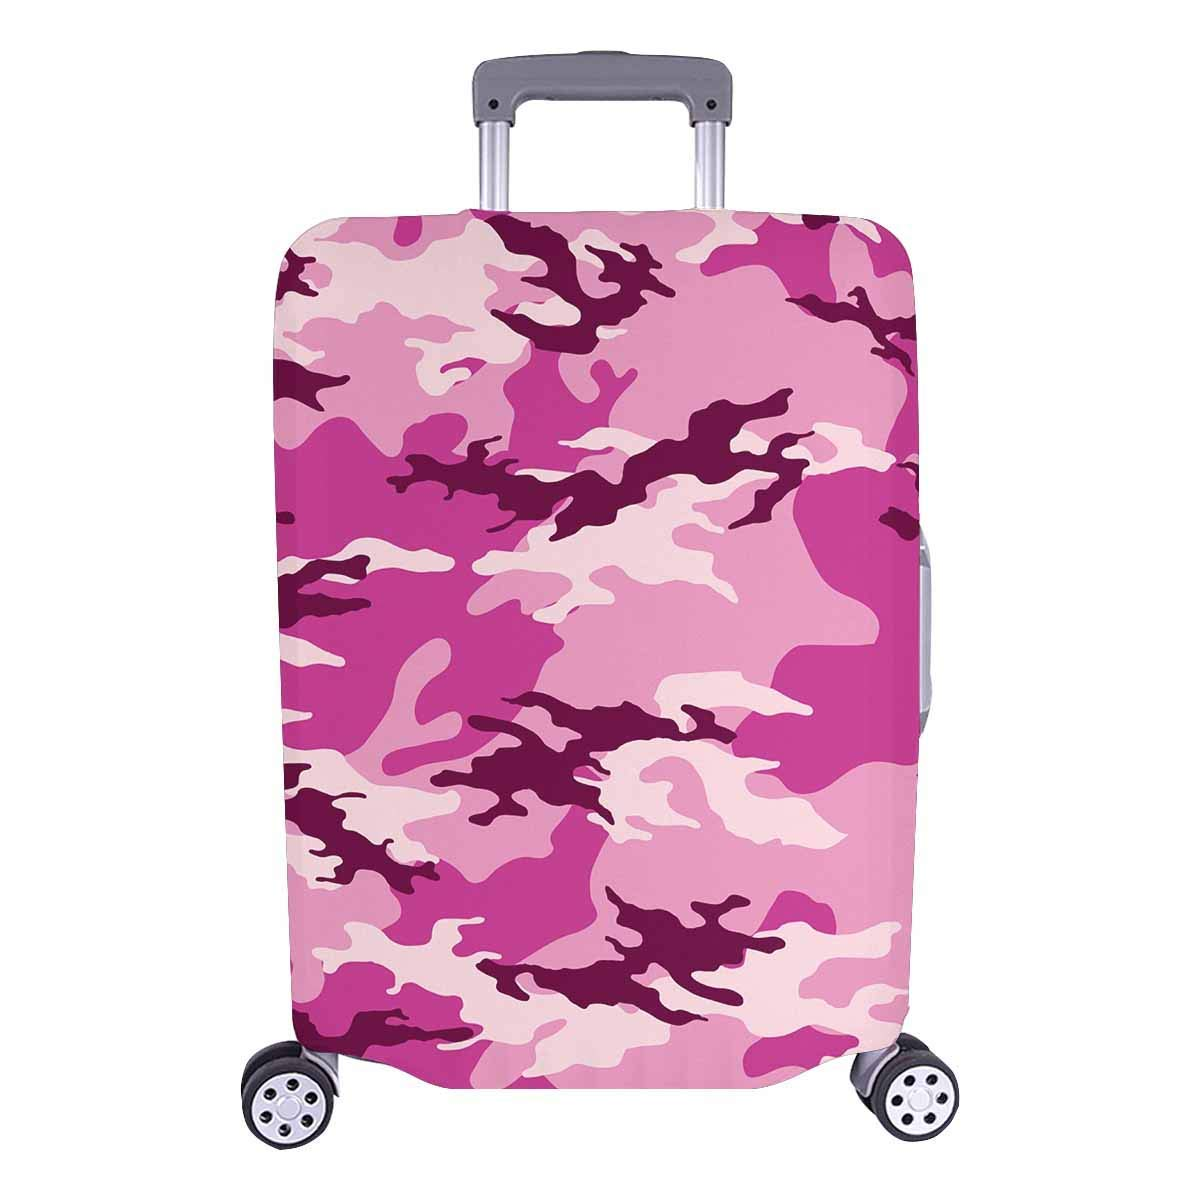 fbce5e3af9e0 Get Quotations · InterestPrint Travel Luggage Protectors Suitcase Covers  Camouflage Pattern Fit 18-28 Inch Luggage